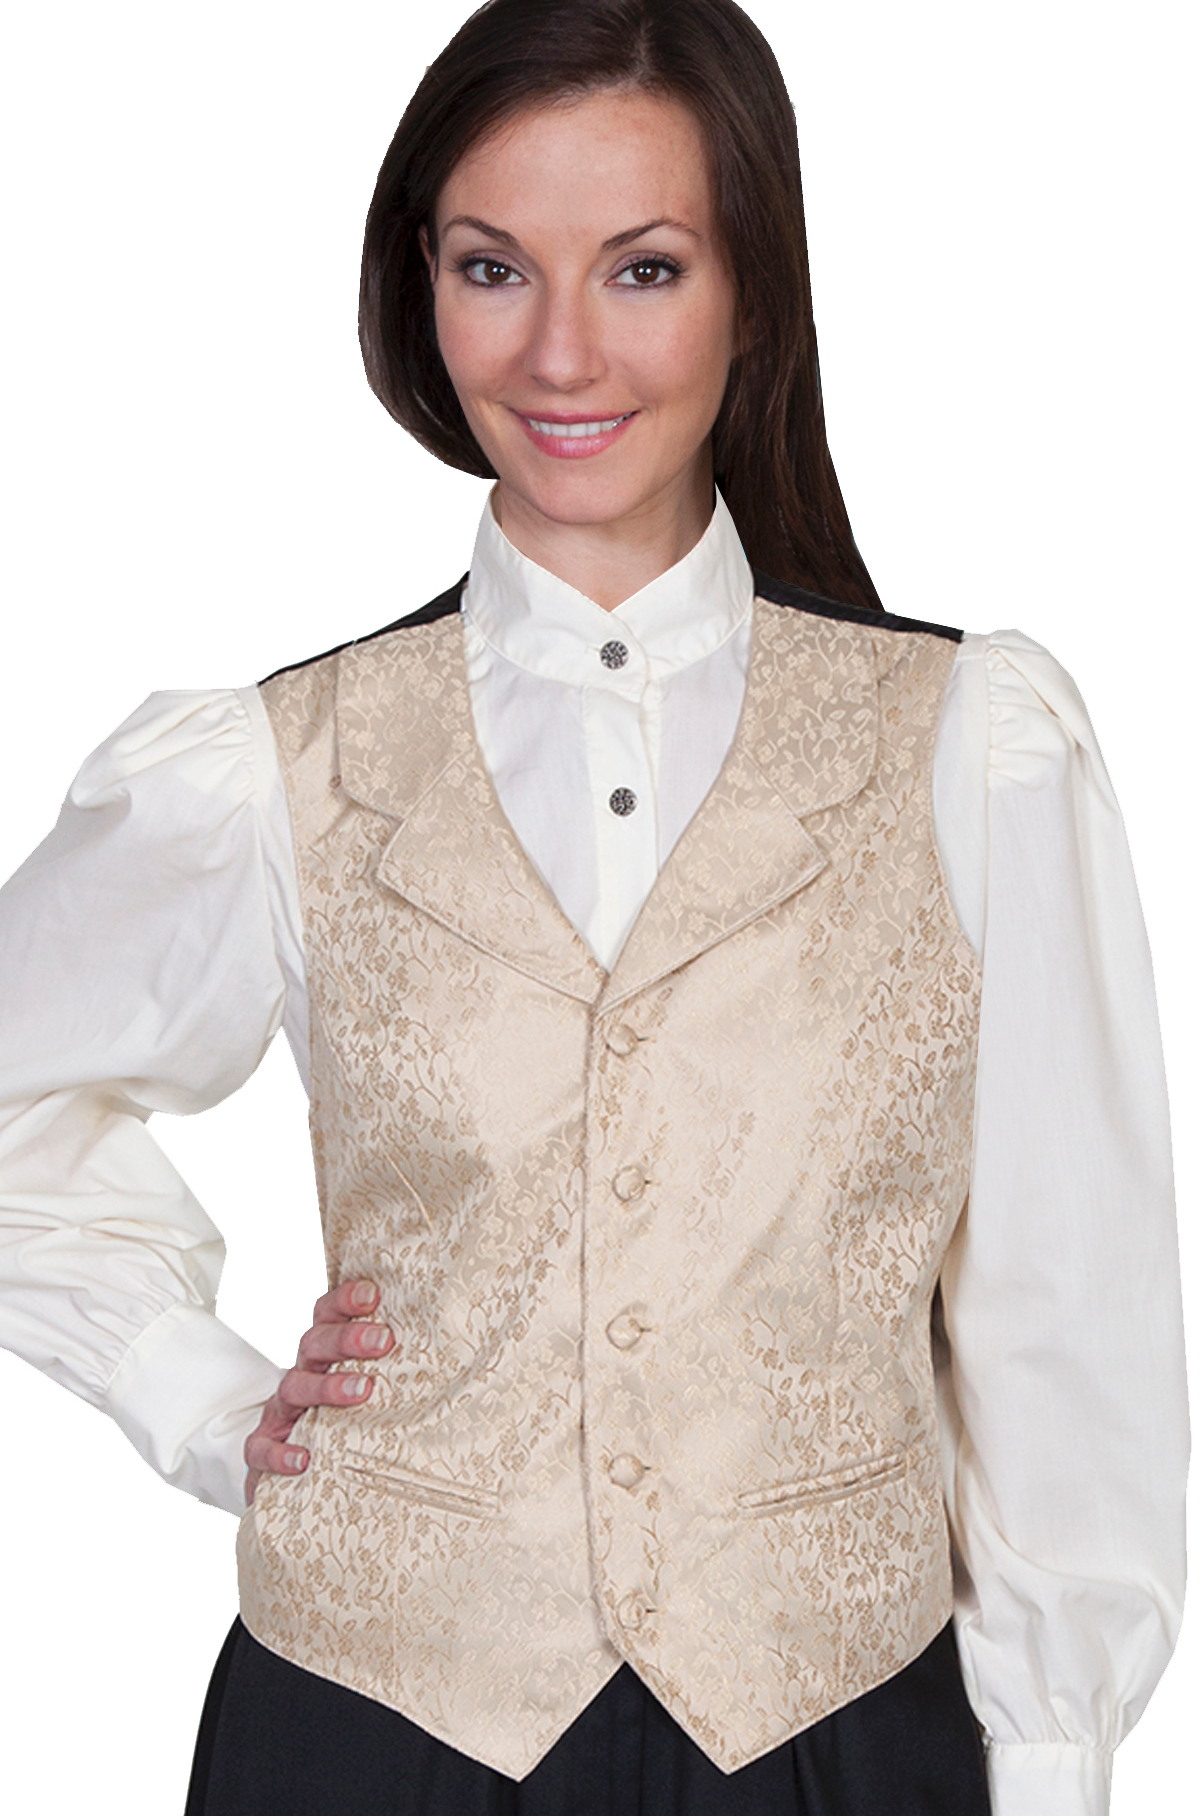 Womens Scully tan Rose Vine Paisley Western Vest, Womens Victorian vest, scully western vest, scully vest, 1800's womens vest, womens 1800's western vest, 1800's vest for women